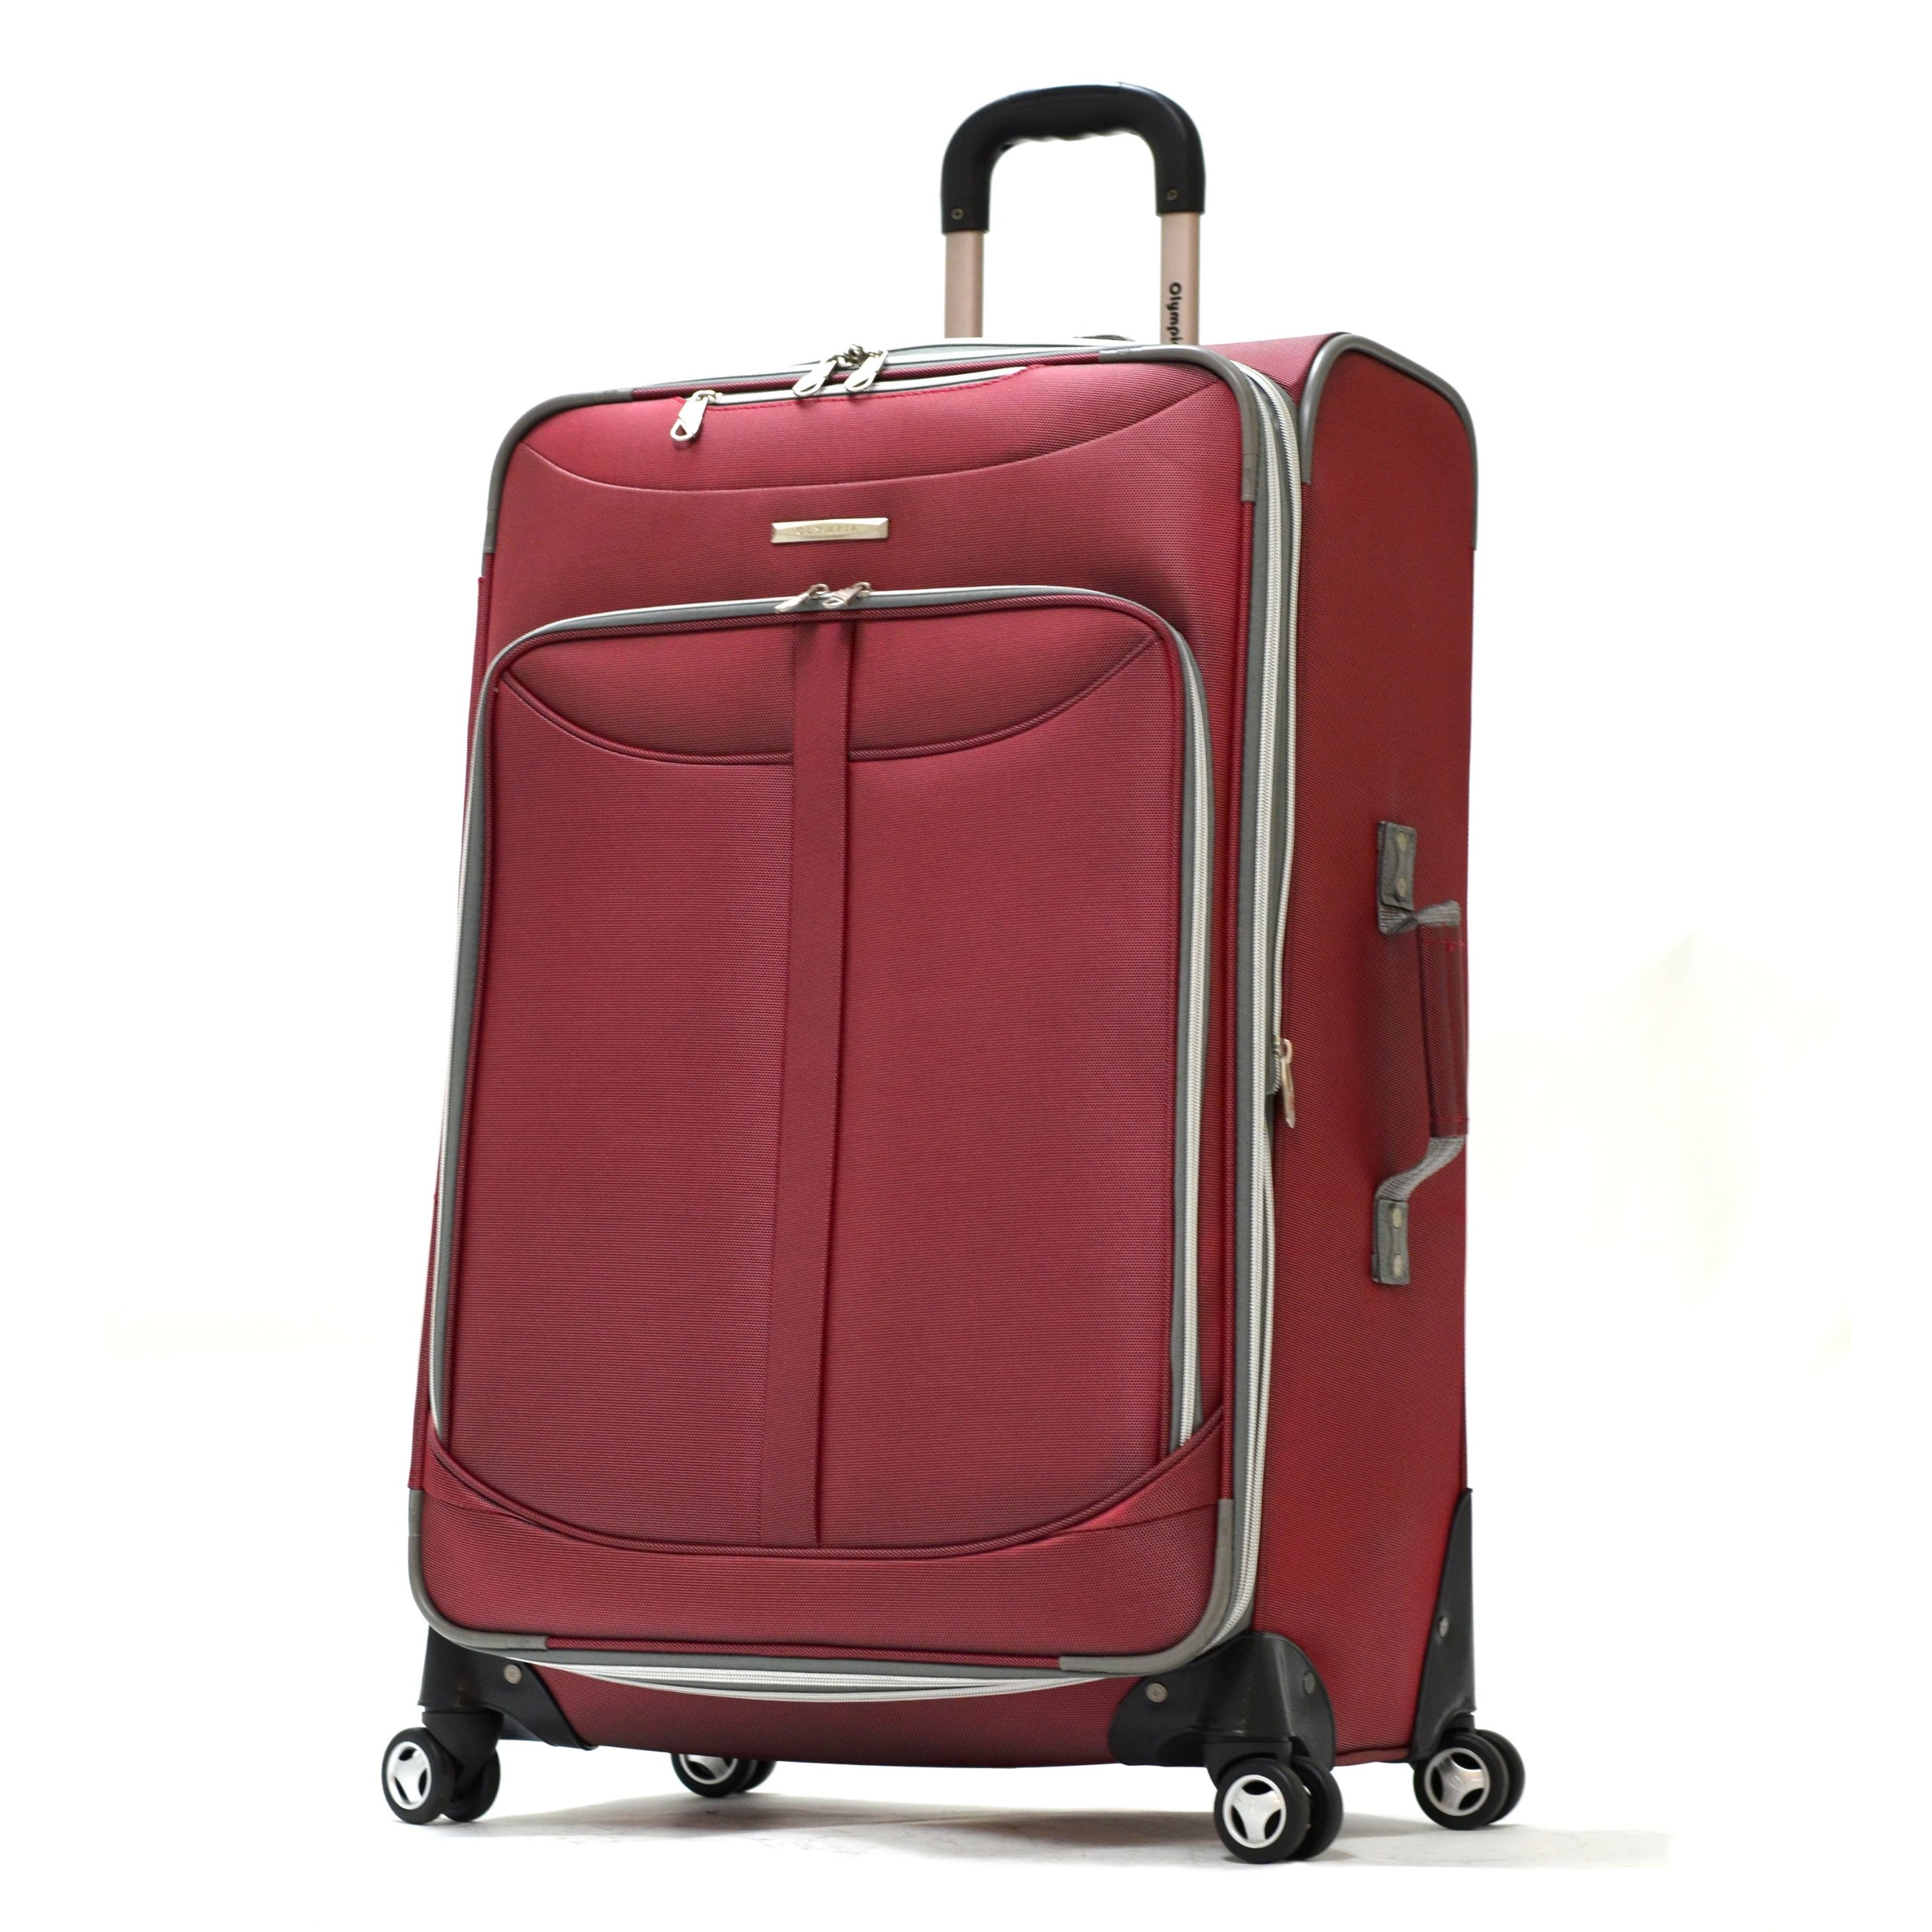 Olympia Luggage  Tuscany 30 Inch Expandable Vertical Rolling Luggage Case,Red,One Size